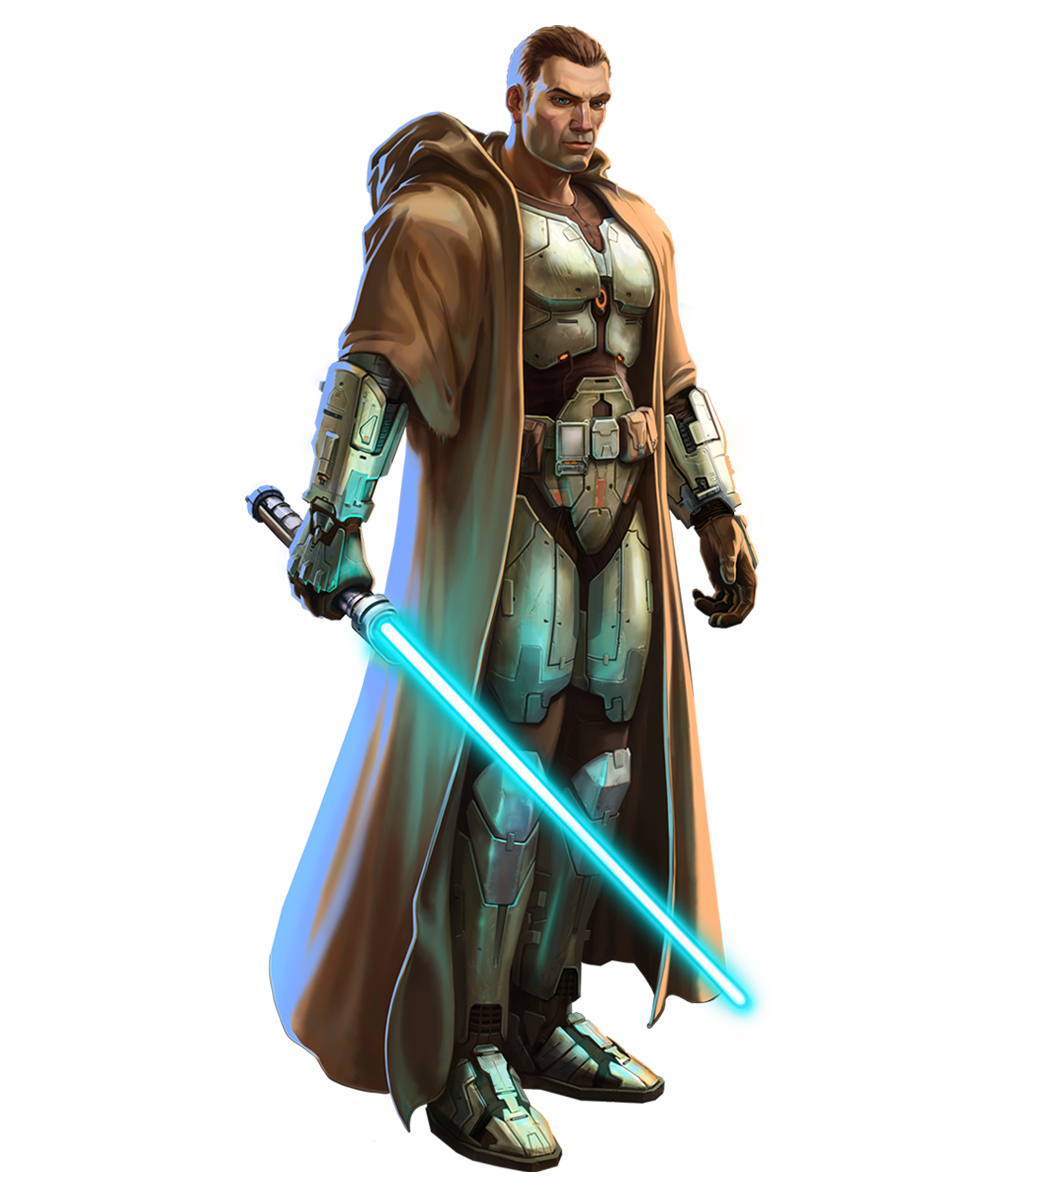 Jedi knight png. Image star wars the